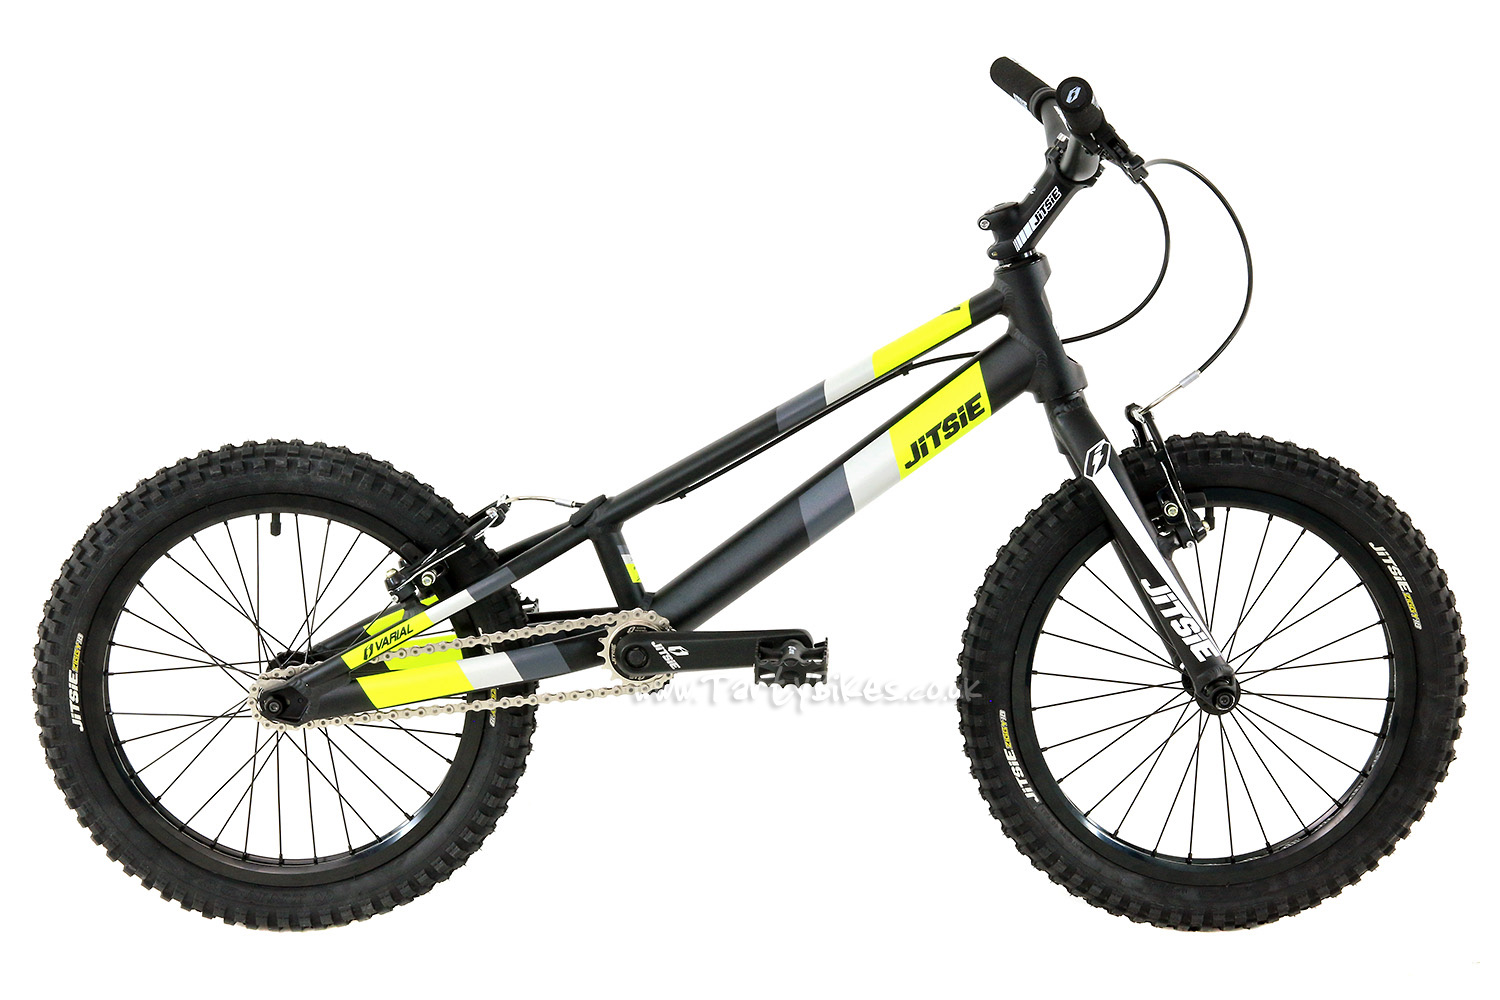 "Jitsie Varial 840 Kids 18"" (Inc FREE Upgraded Jitsie Pedals!)"